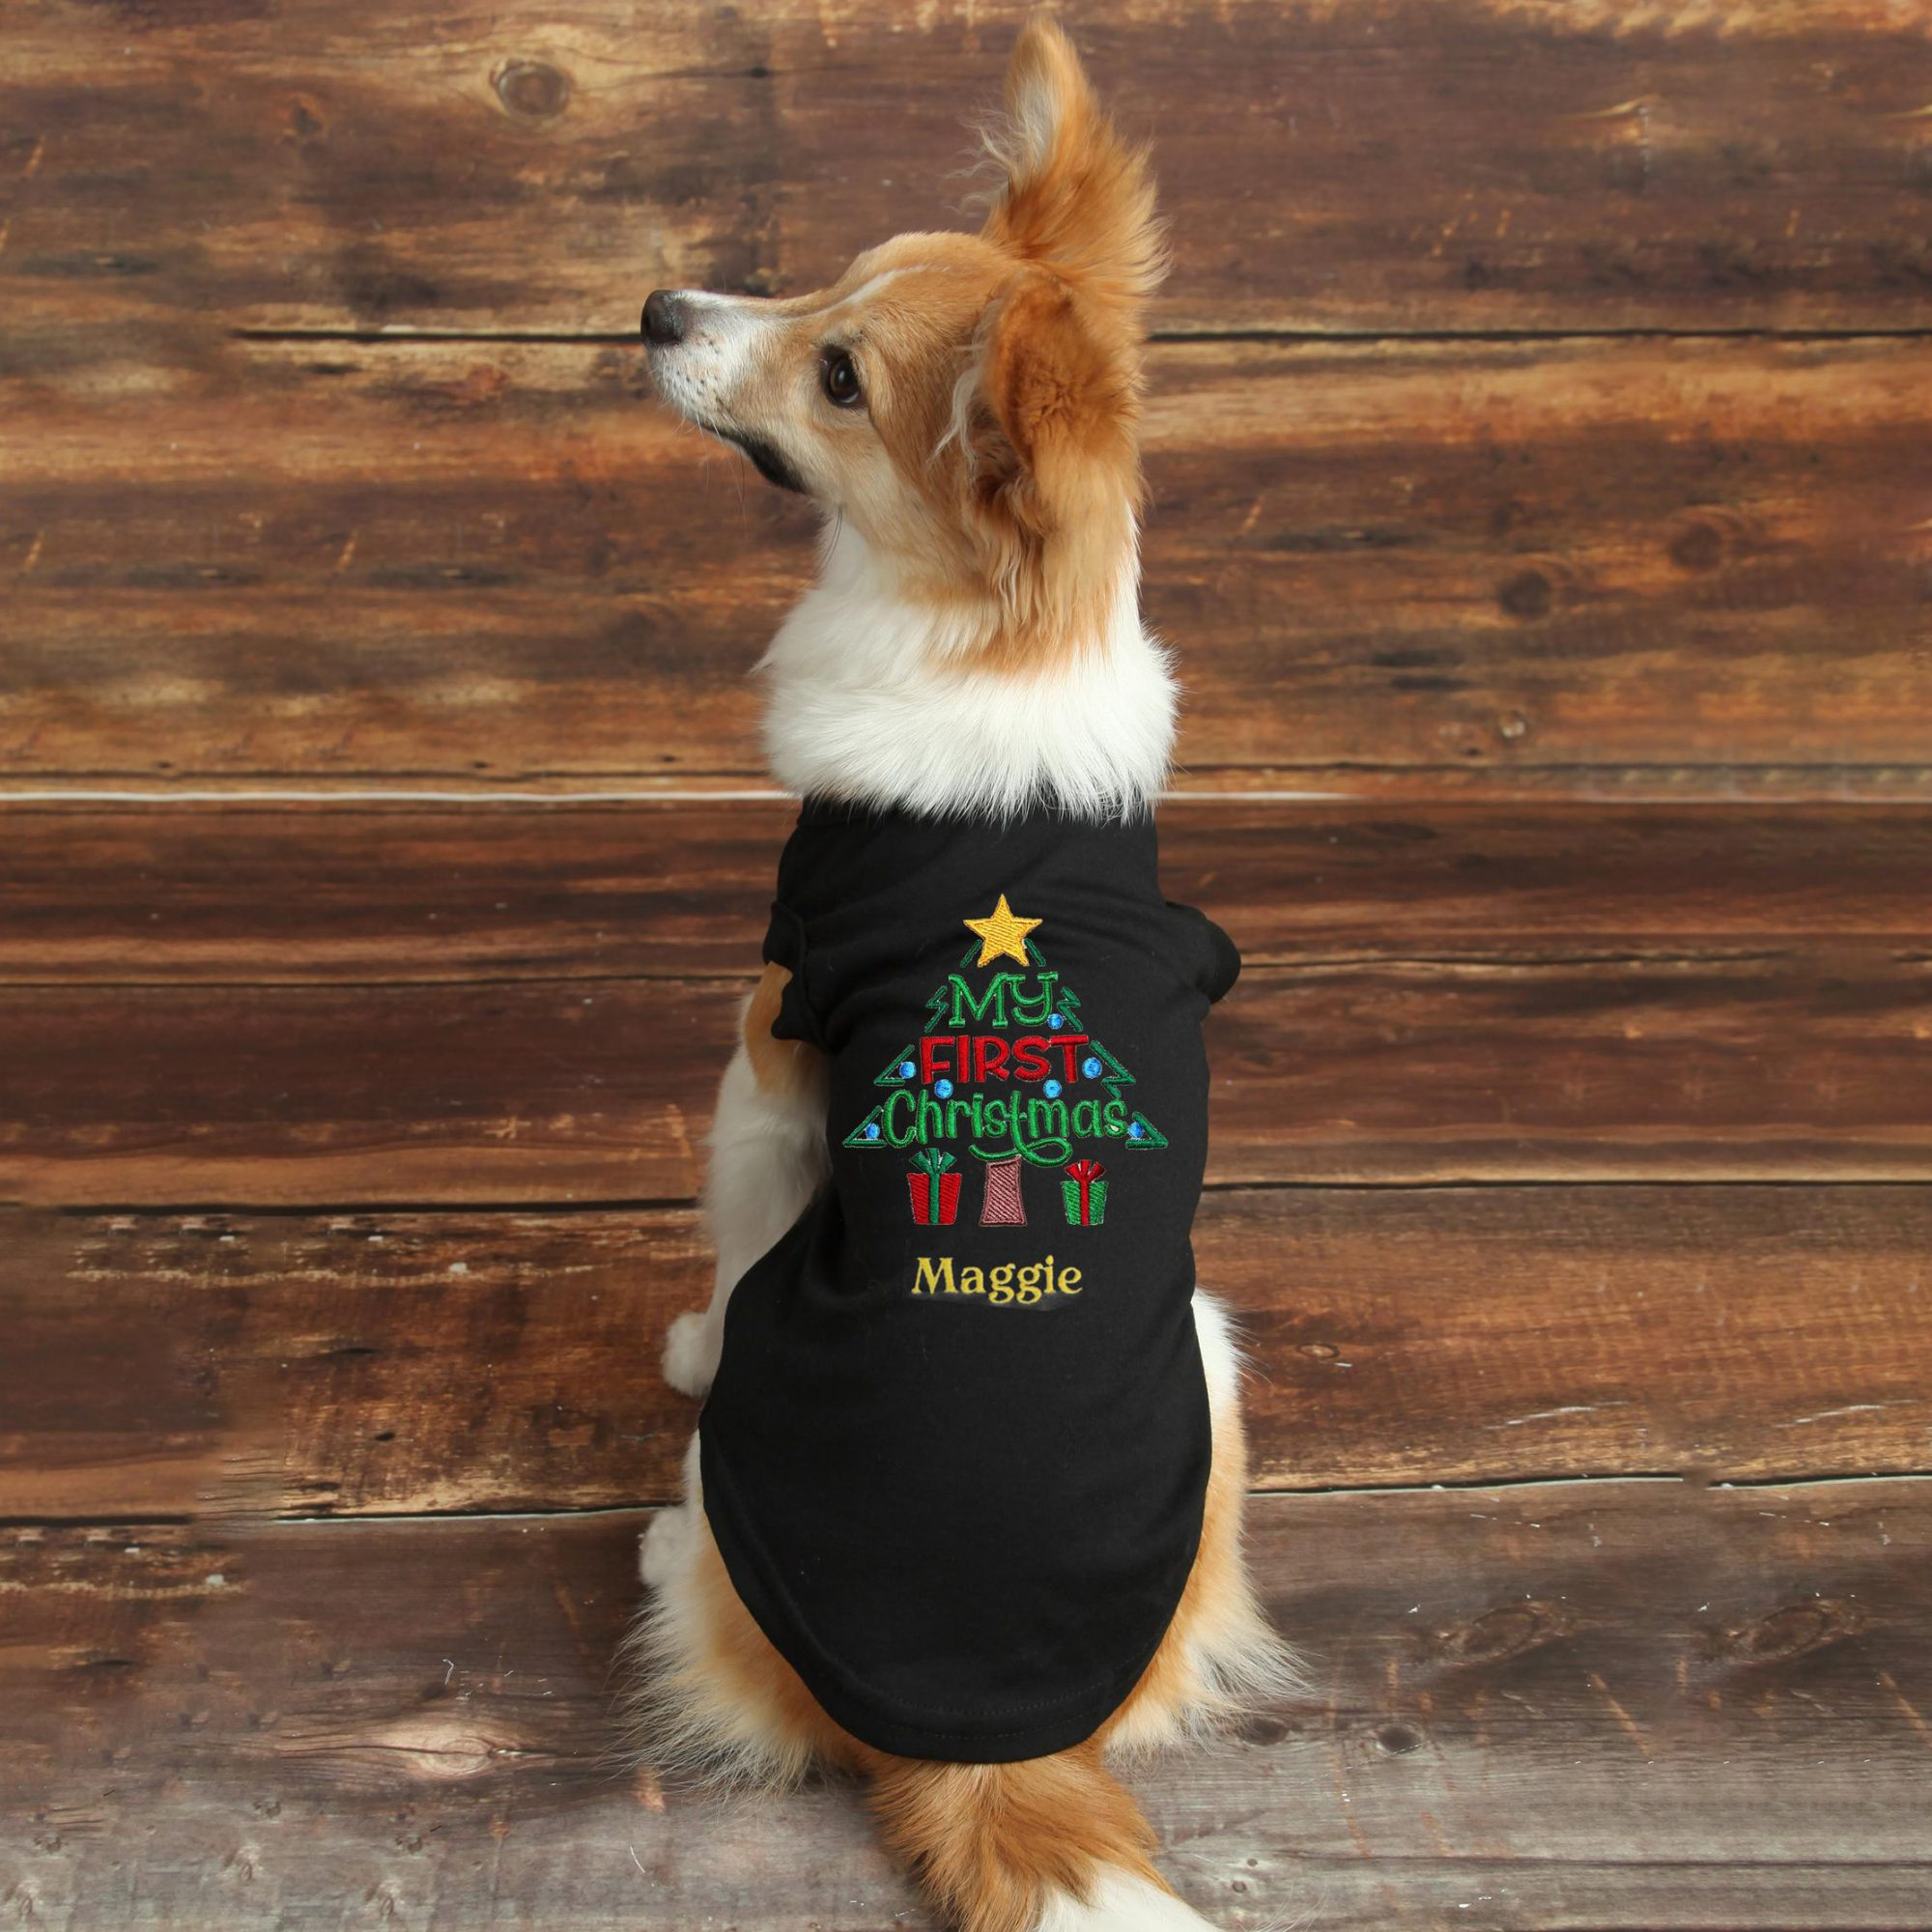 dogs-first-christmas-outfit